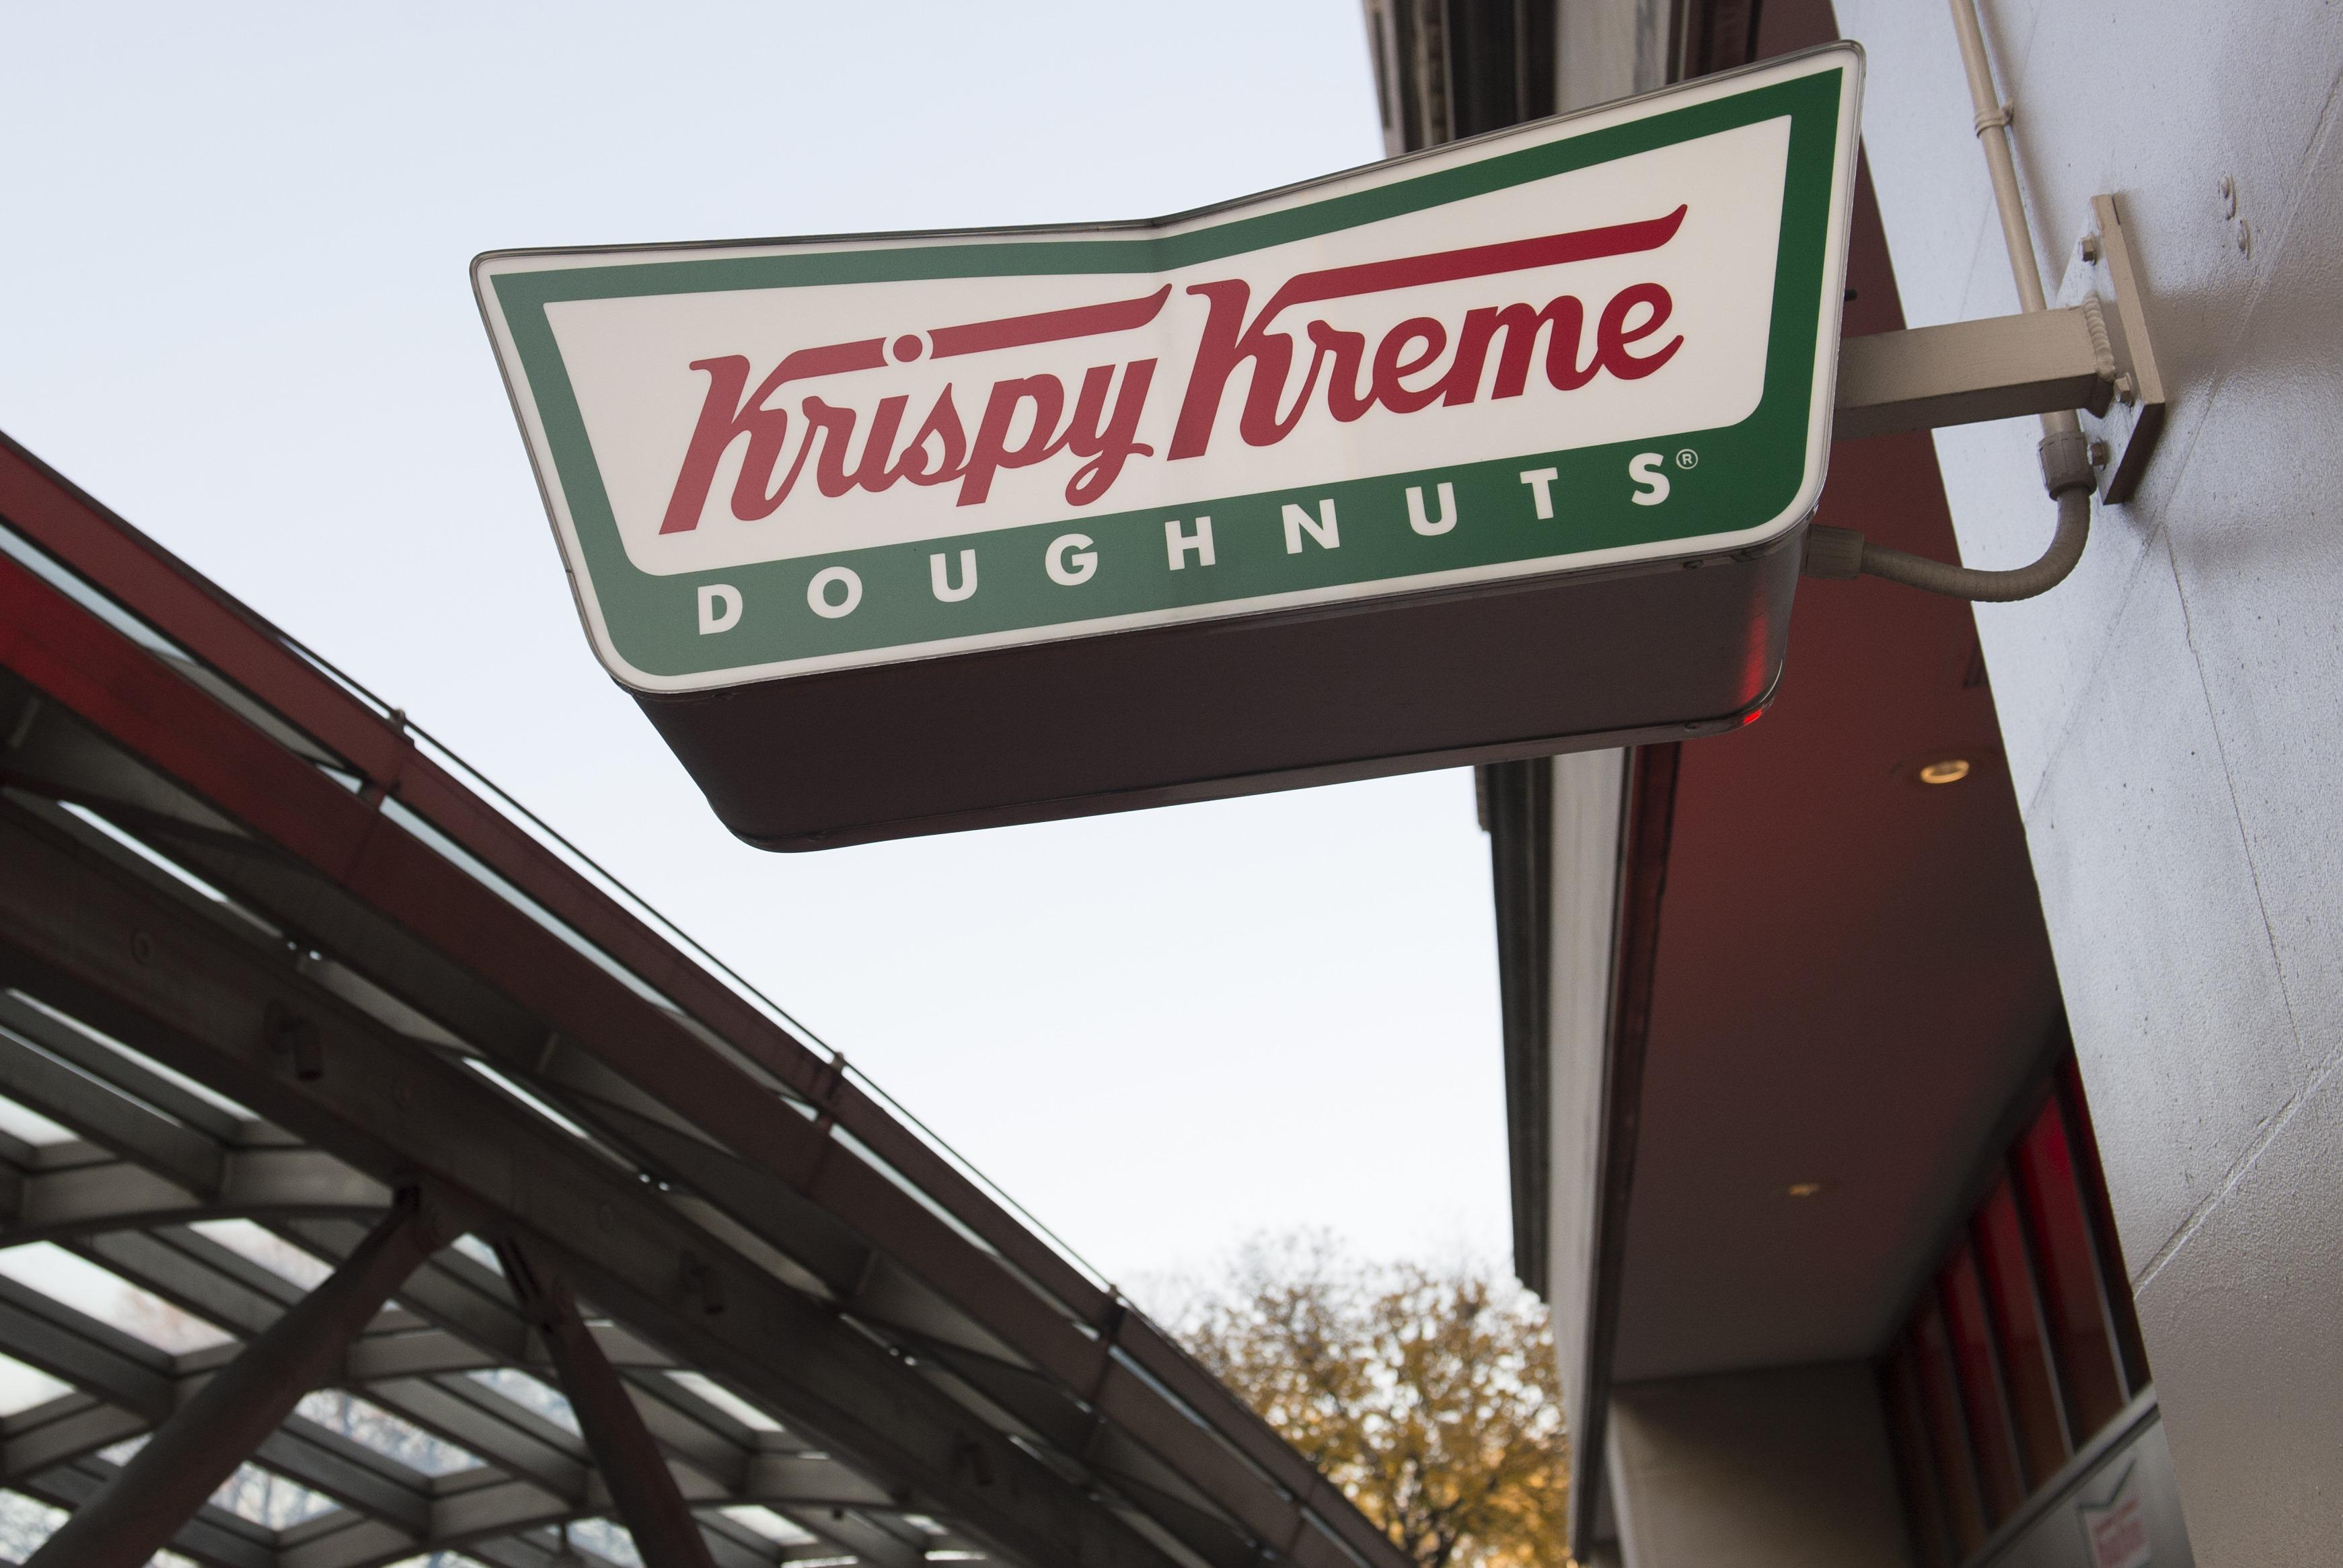 A sign for Krispy Kreme doughnuts